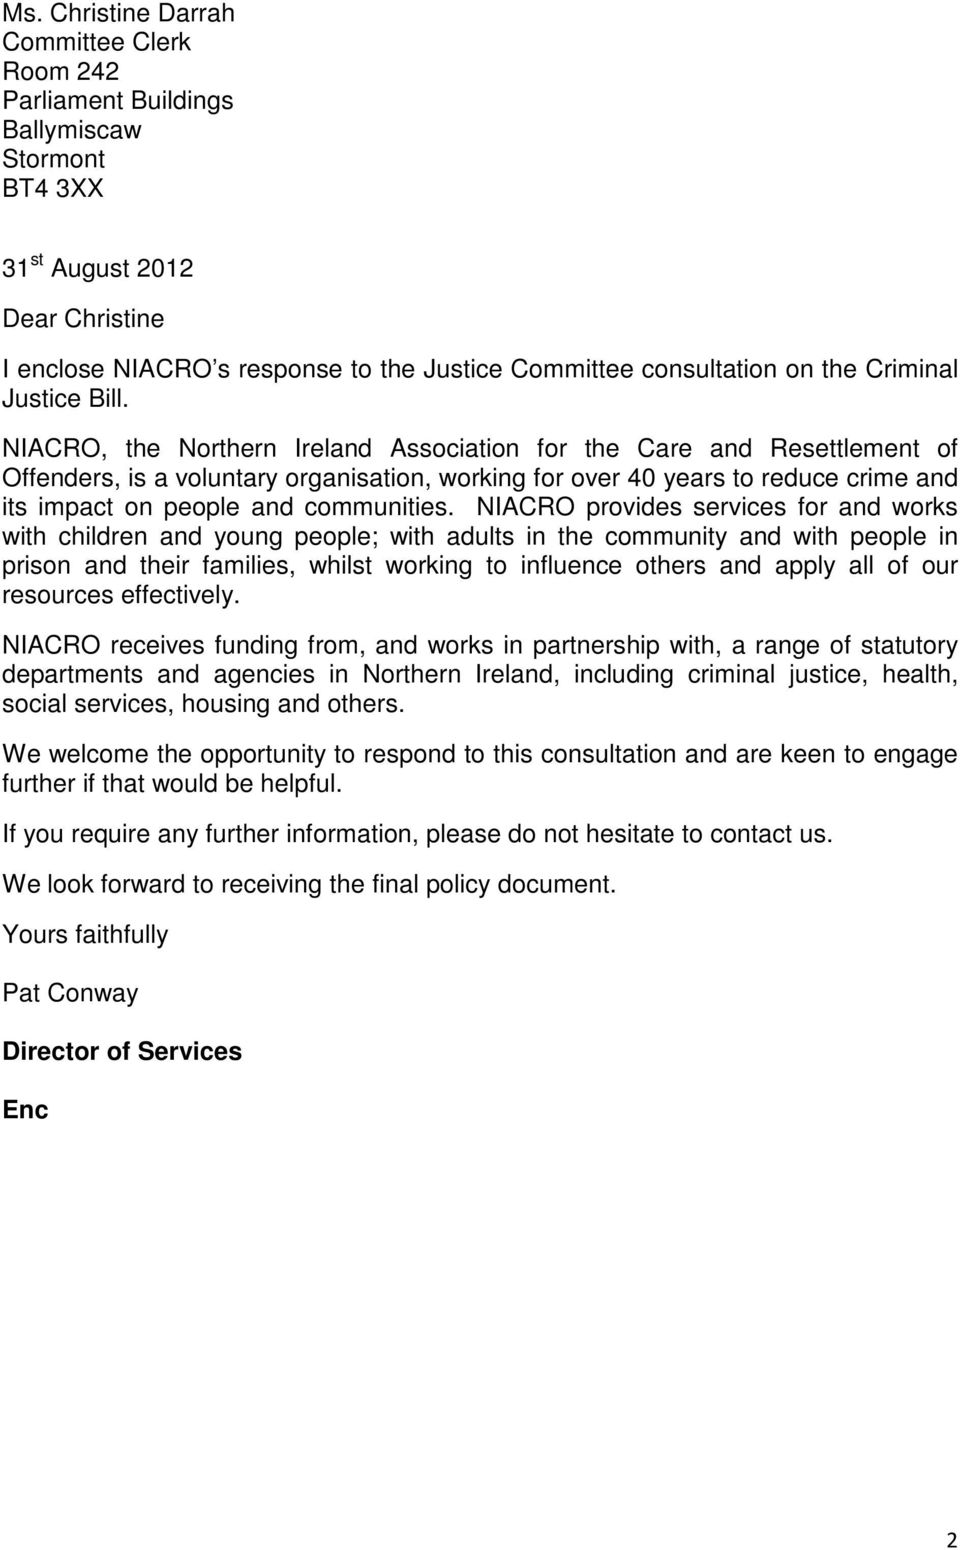 NIACRO, the Northern Ireland Association for the Care and Resettlement of Offenders, is a voluntary organisation, working for over 40 years to reduce crime and its impact on people and communities.